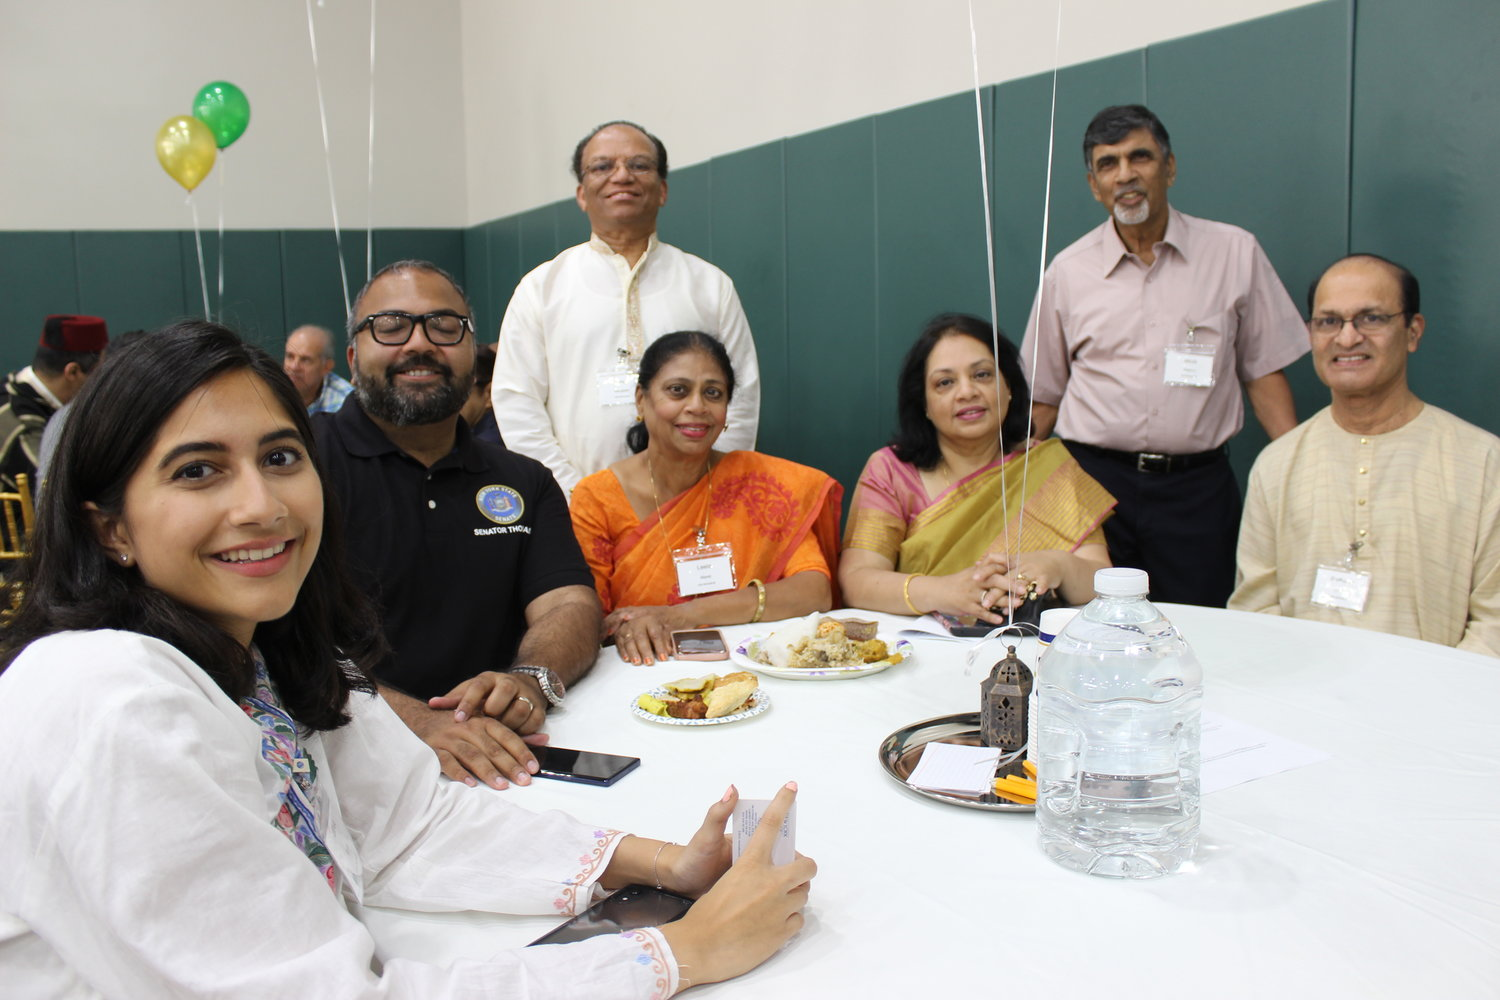 State Sen. Kevin Thomas, in black shirt, enjoyed the feast with, from left, Leena Khan, organizer Unni Mooppan, Leela Maret, Preetha George and her husband, Jacob, and Sudhakar Shetty.